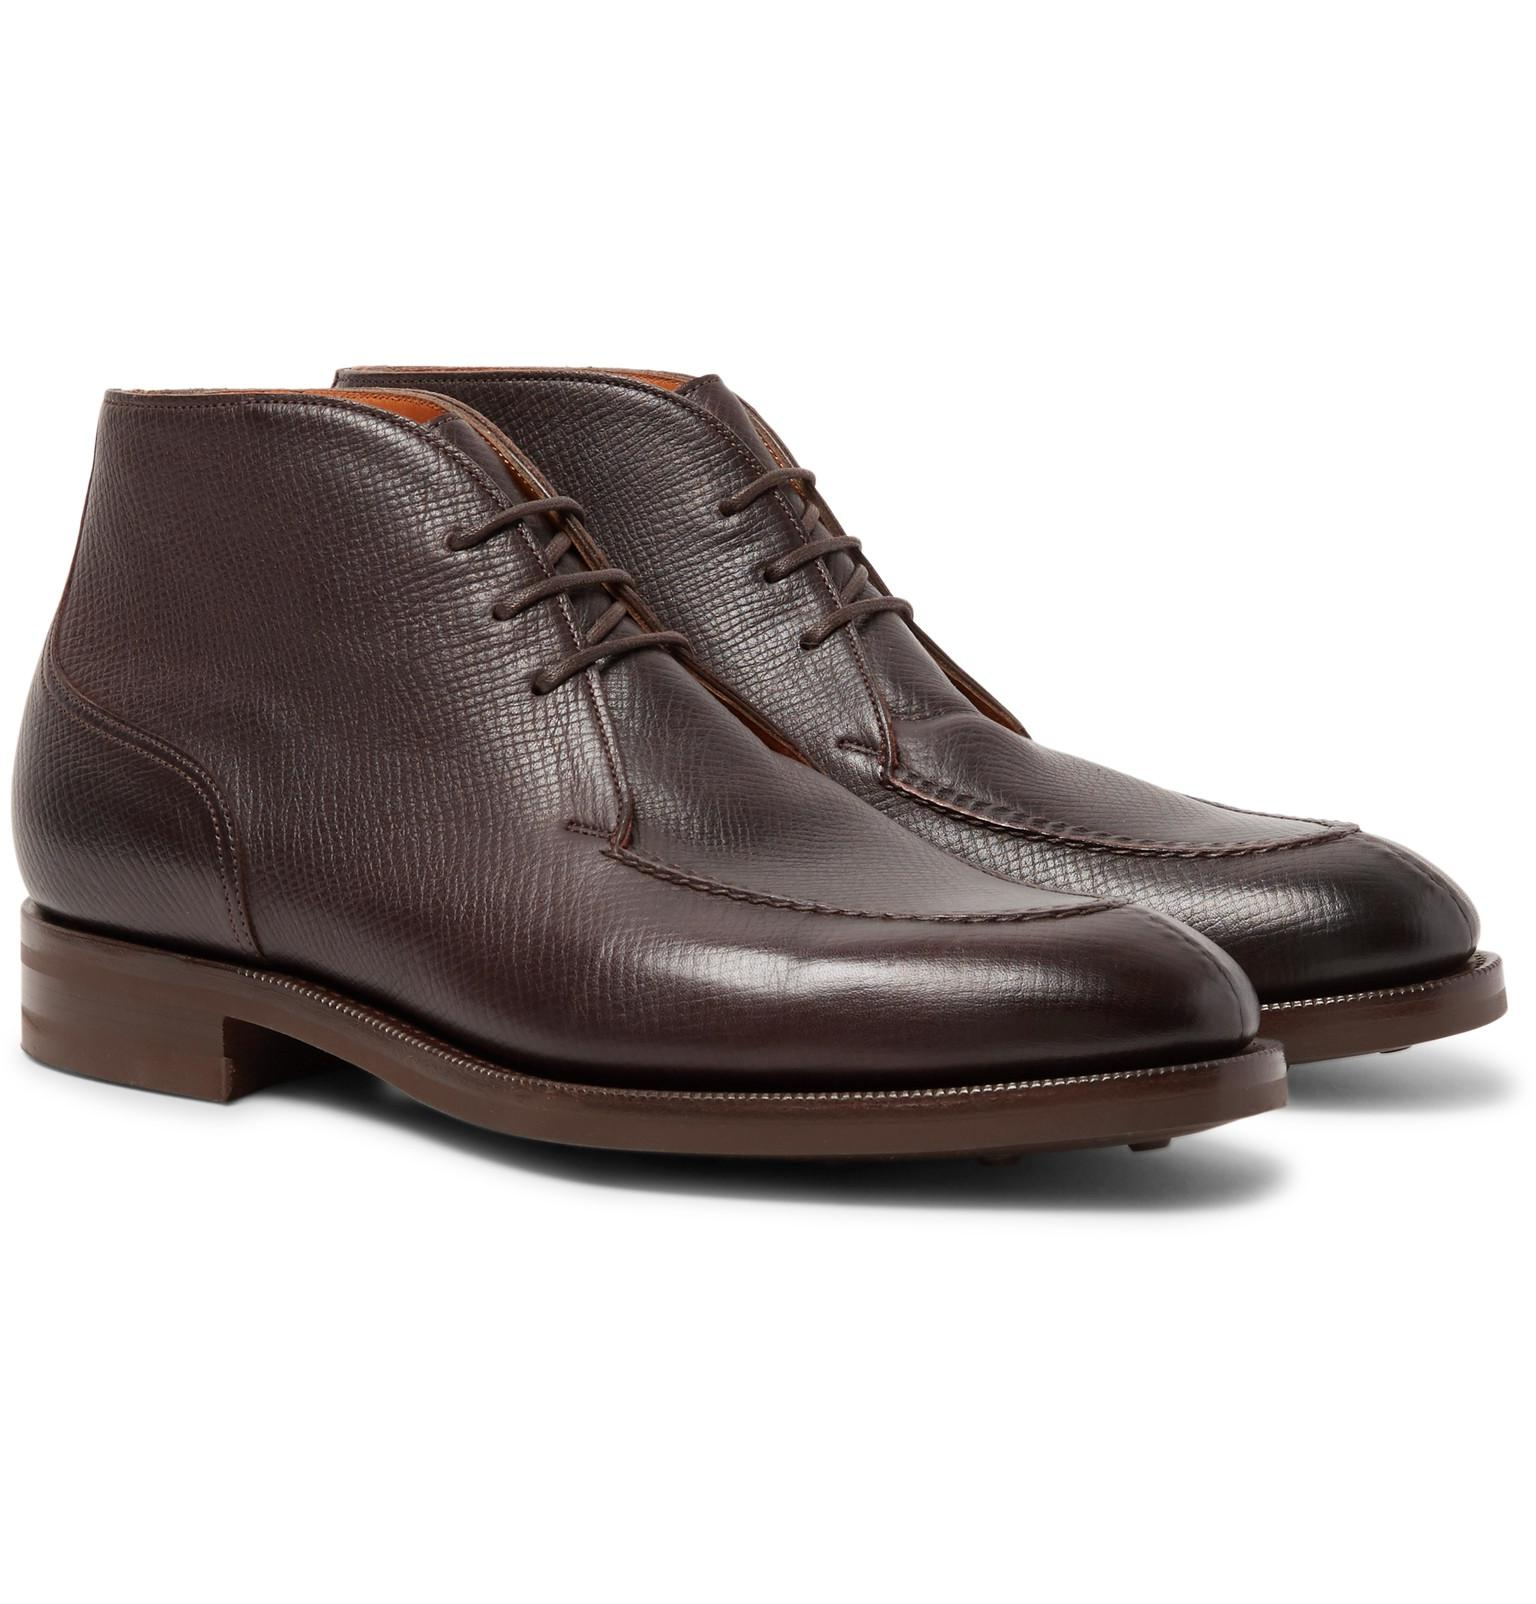 Tan leather 'Halifax' chukka boots for cheap price 8cyD6c